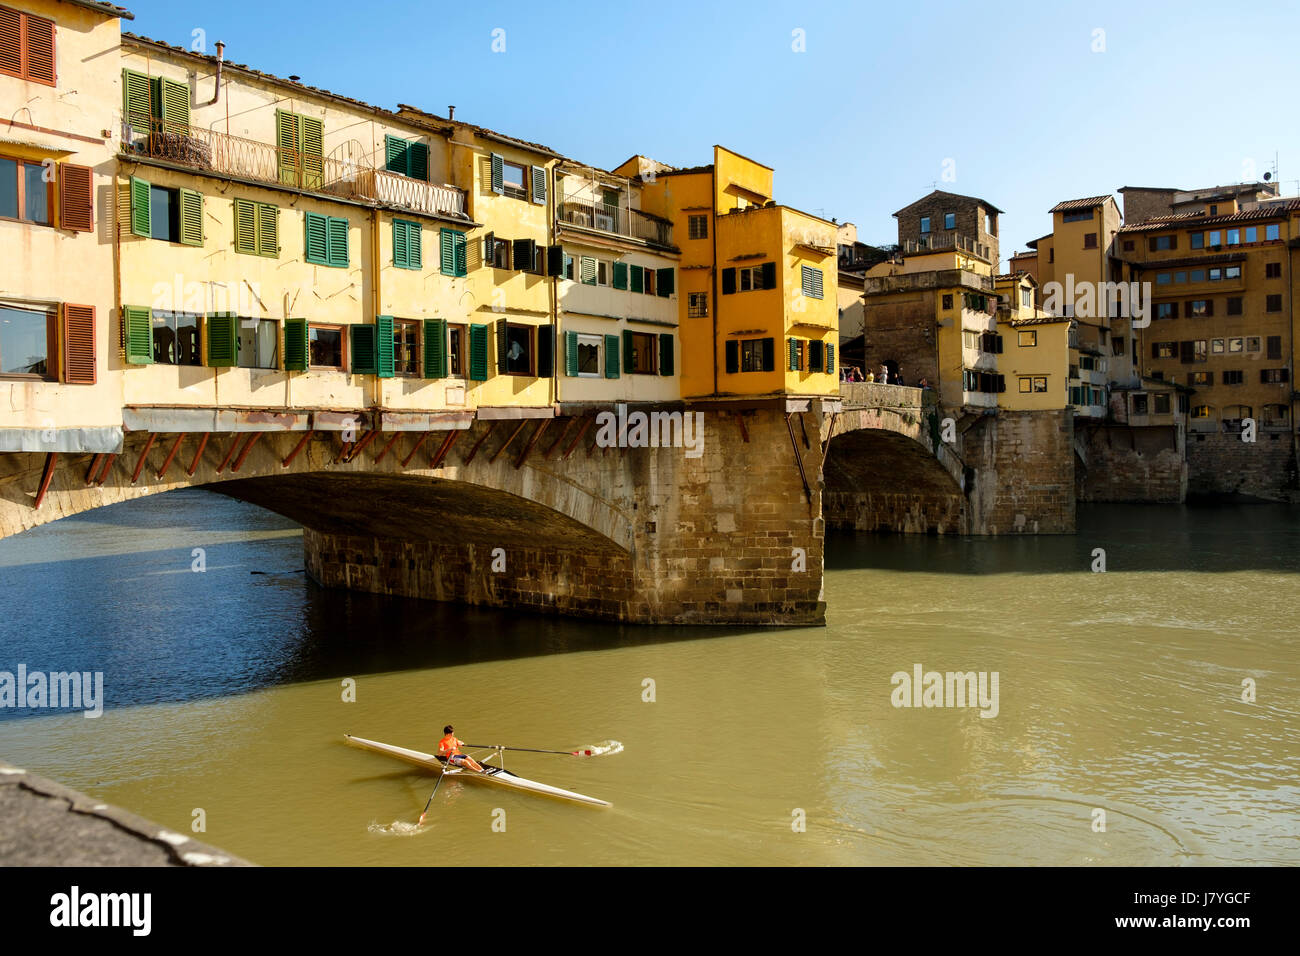 Ponte Vecchio over river Arno, Florence, Tuscany, Italy - Stock Image